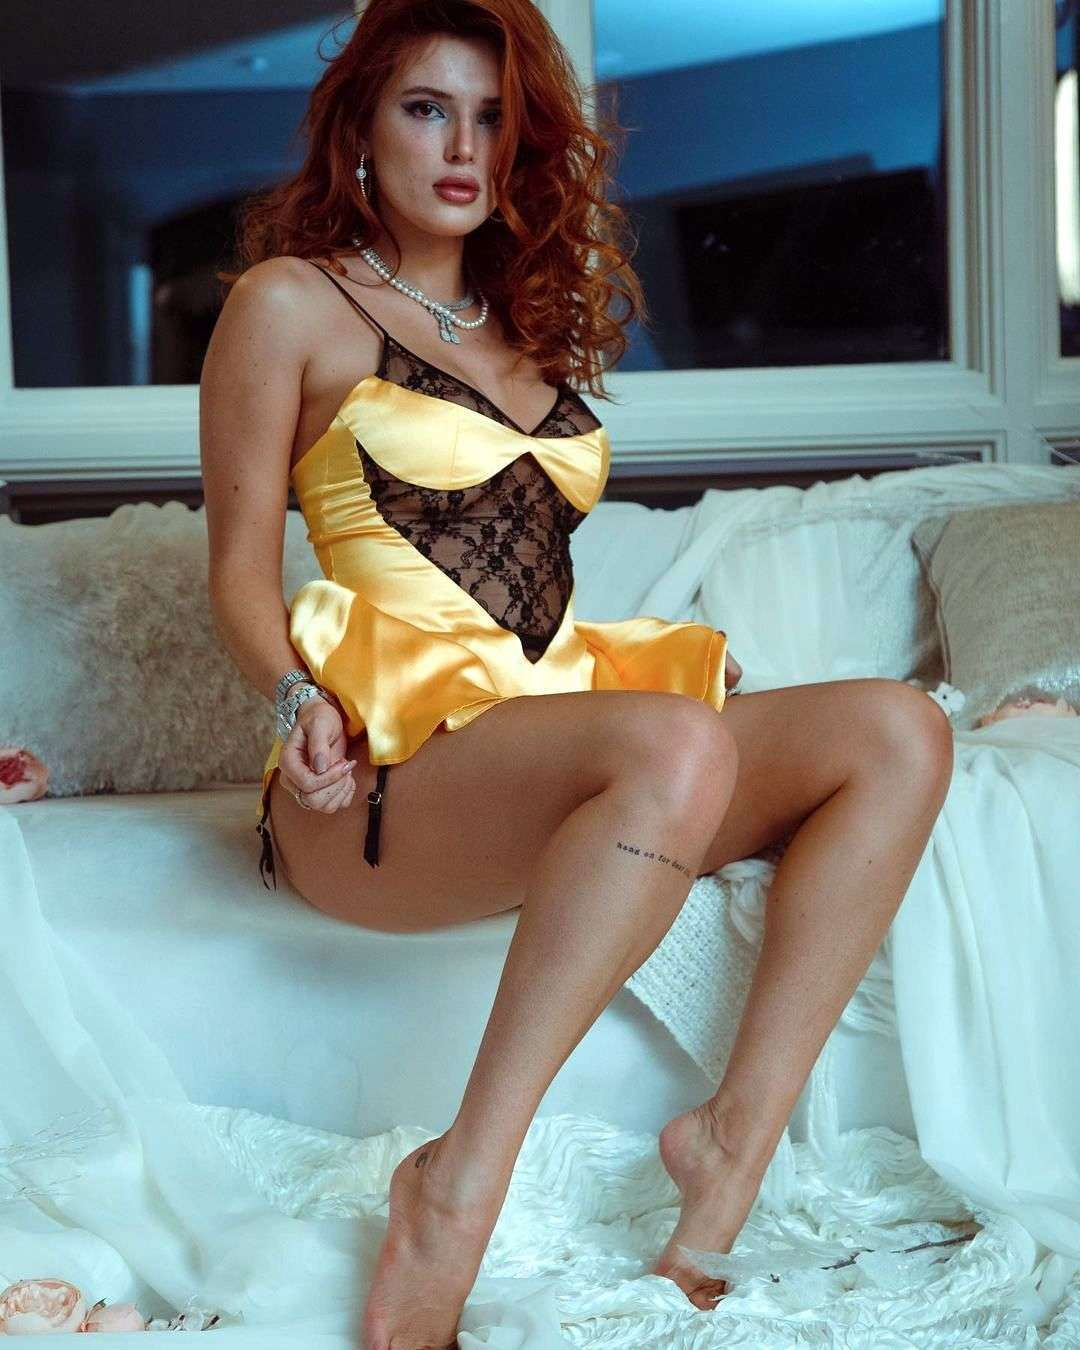 Bella Thorne Leggy and Cleavage in a Sheer Lingerie